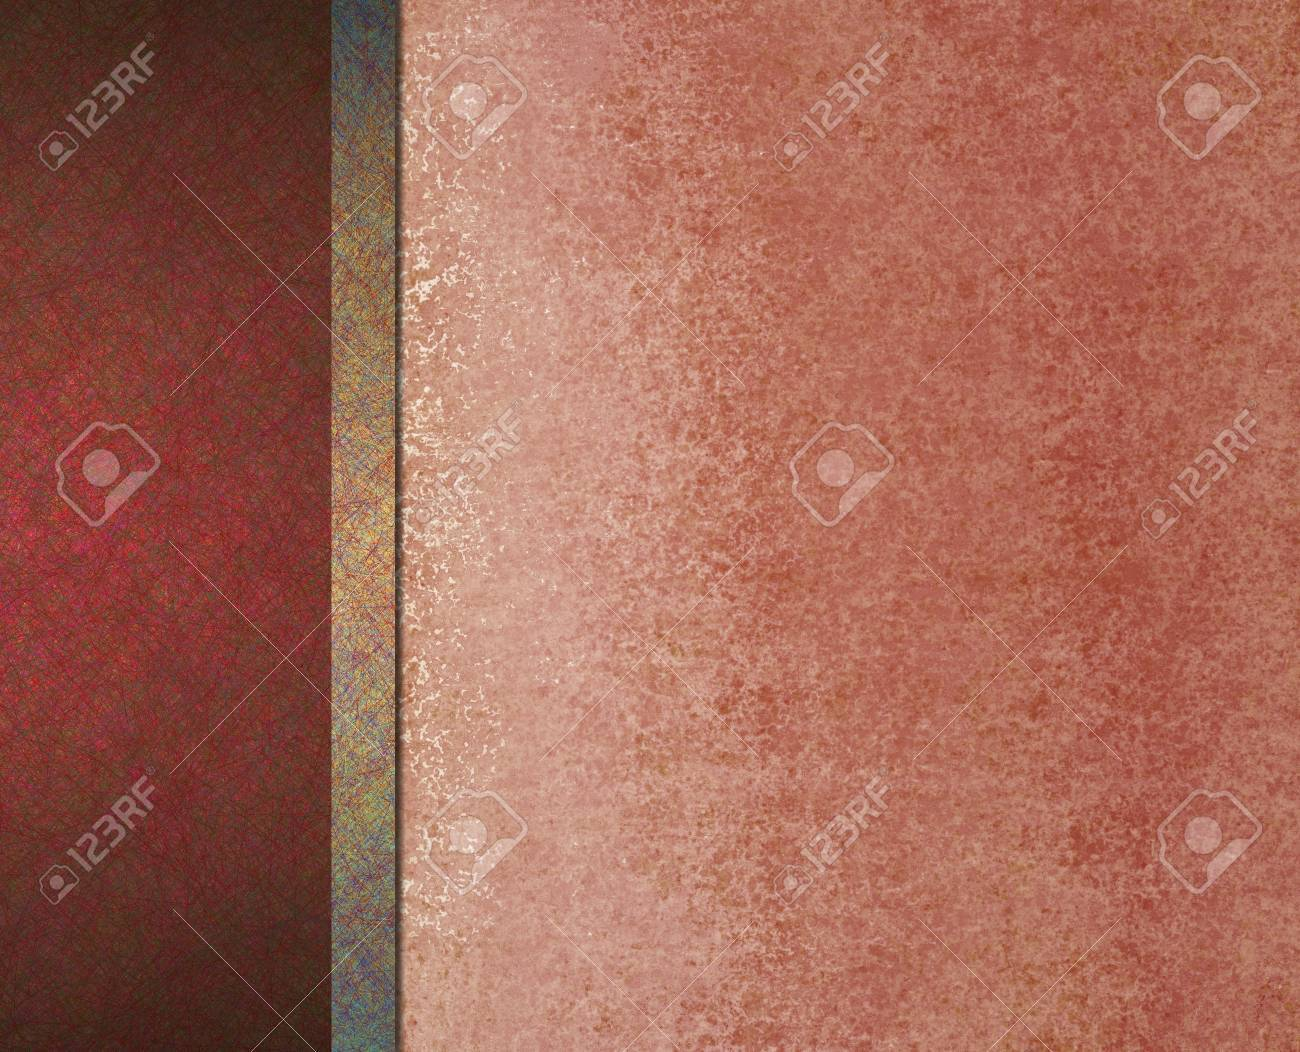 Elegant Formal Red Background With Abstract Vintage Grunge Texture Details And Scratch On Border Frame